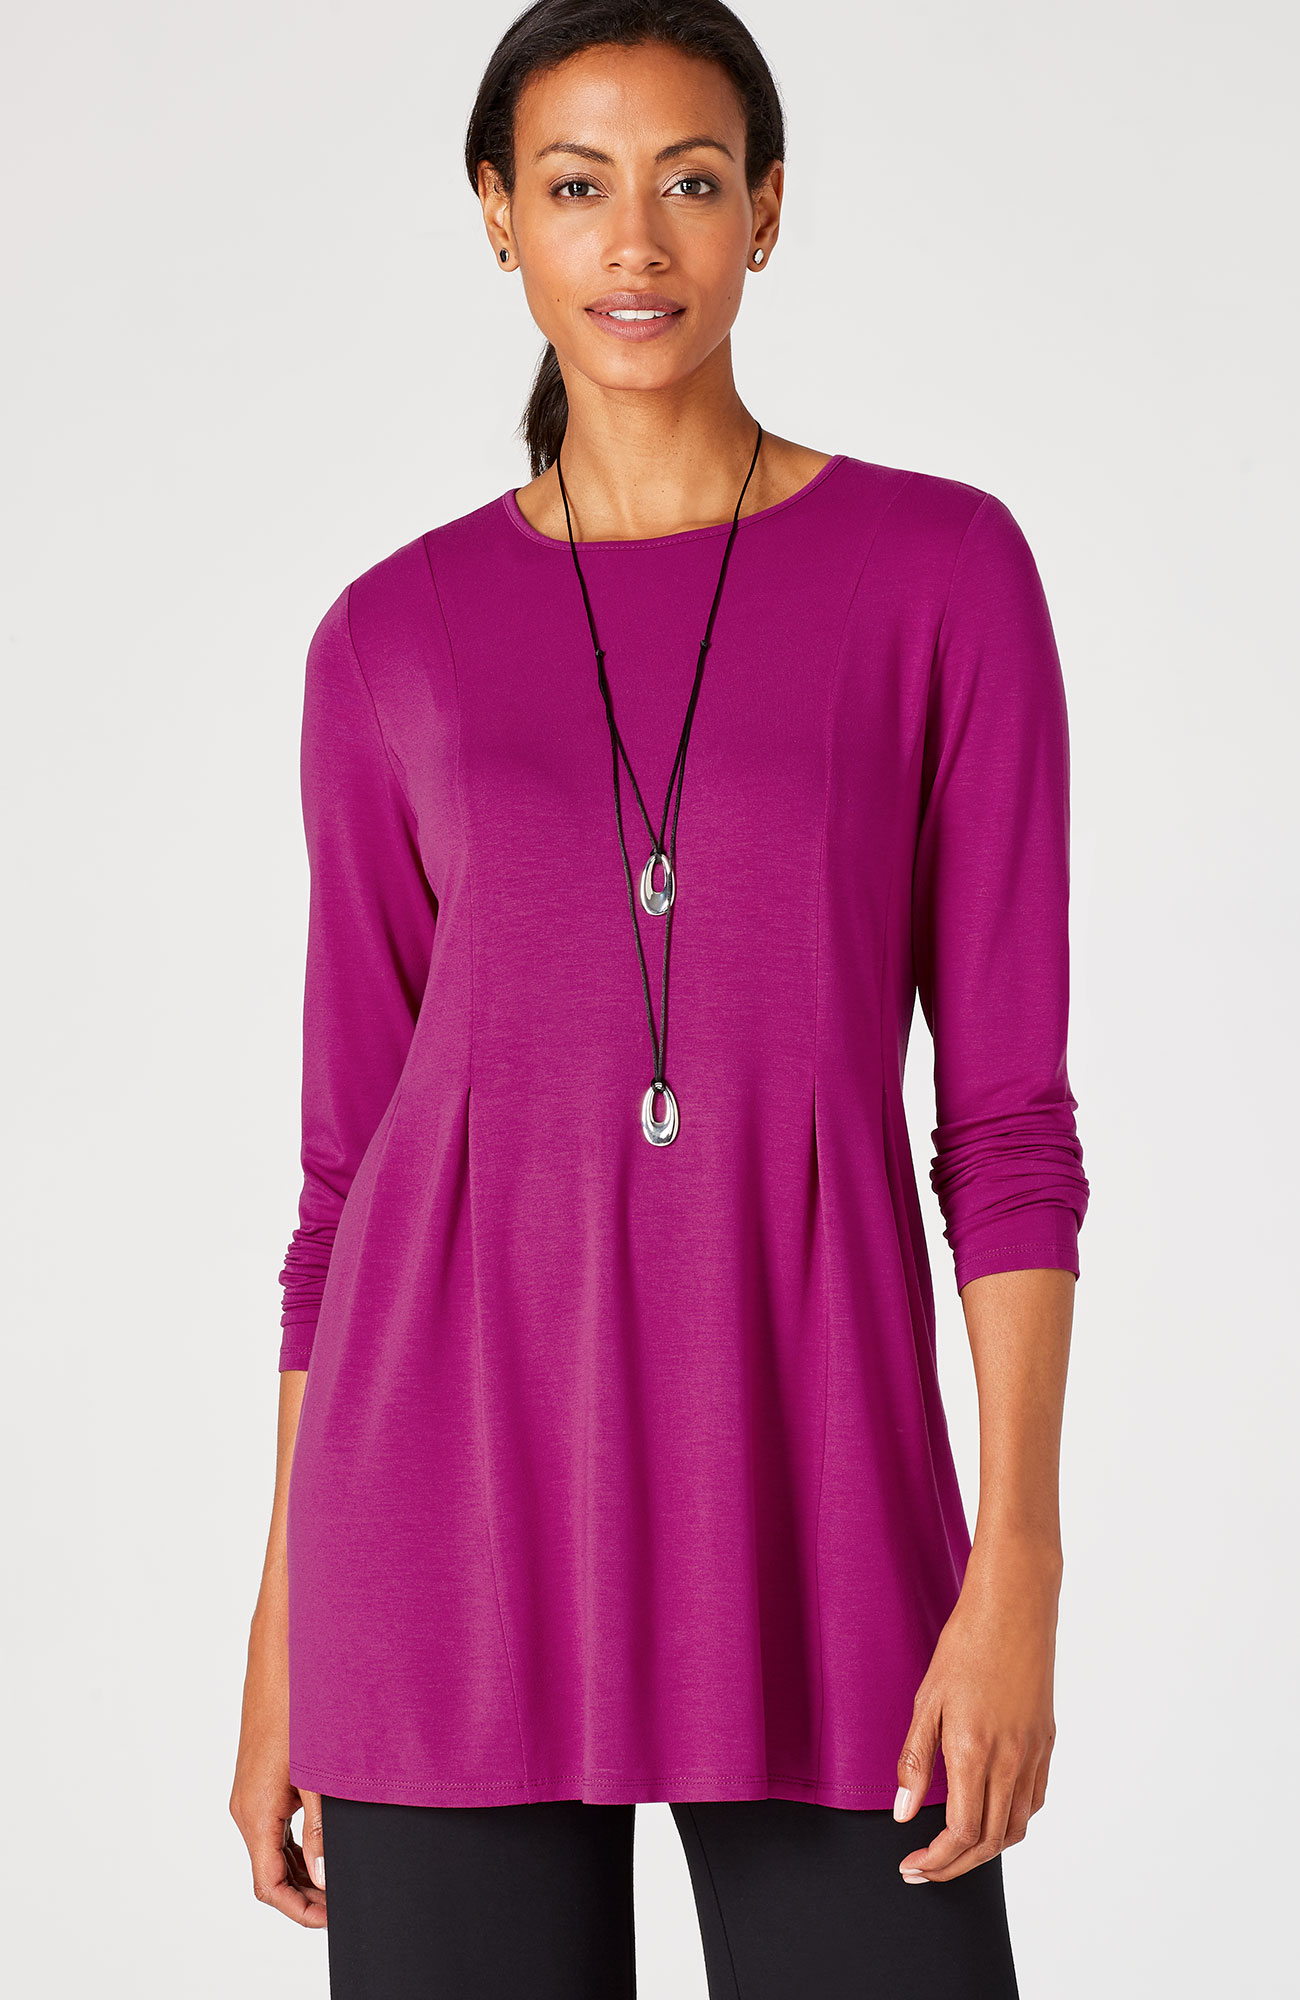 Wearever side-pleat tunic